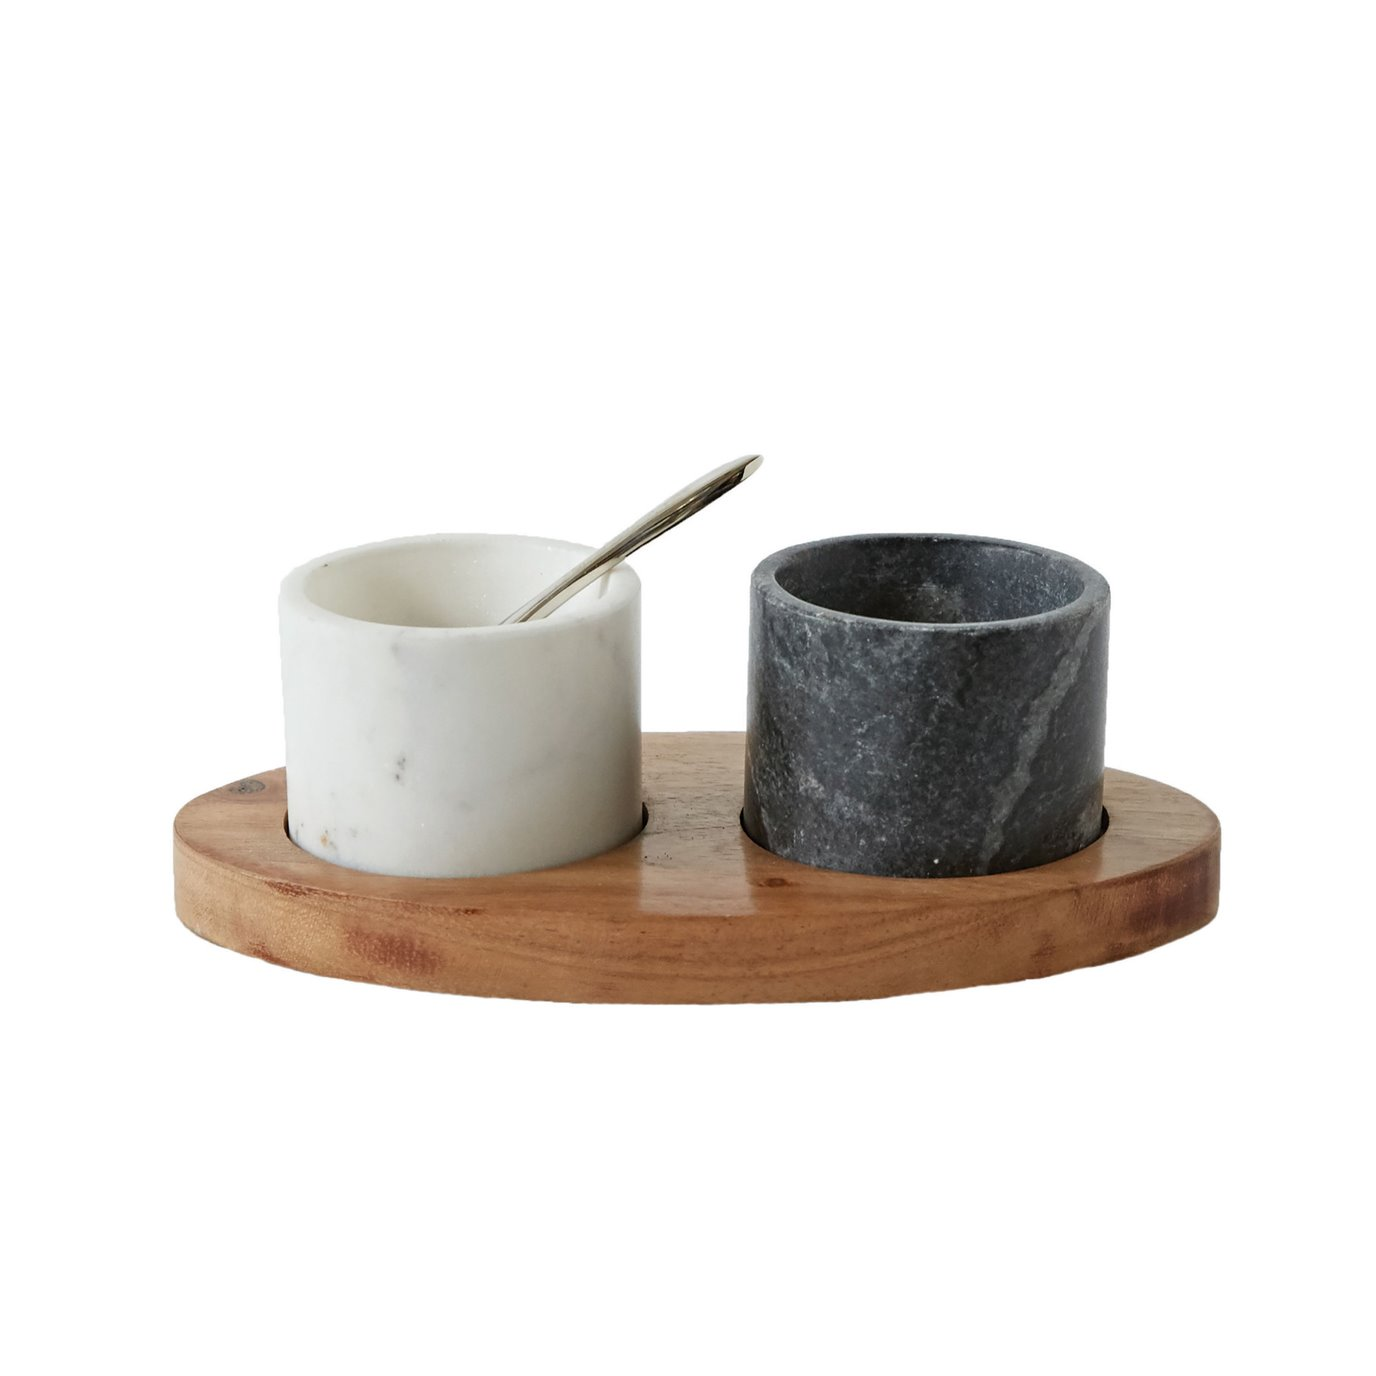 Marble Bowls on Mango Wood Tray with Brass Salt Spoon (Set of 4 Pieces)